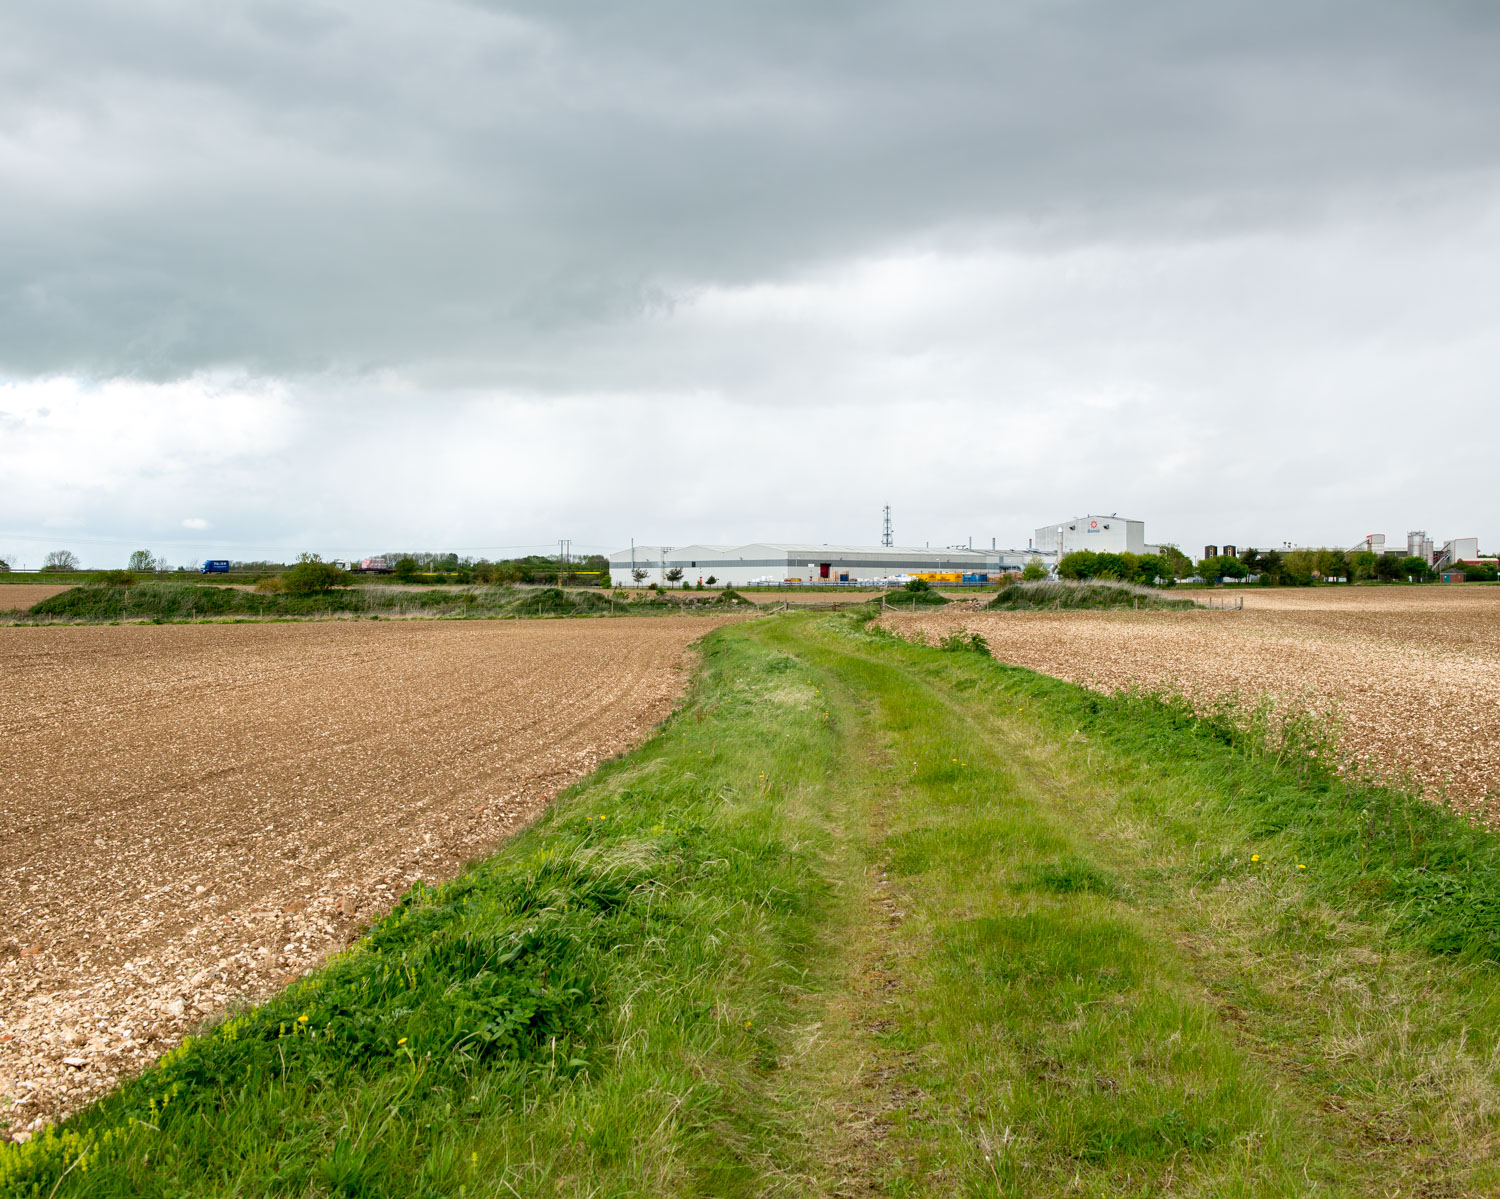 Main Runway 318 North, Elsham Wolds, Lincolnshire 2015